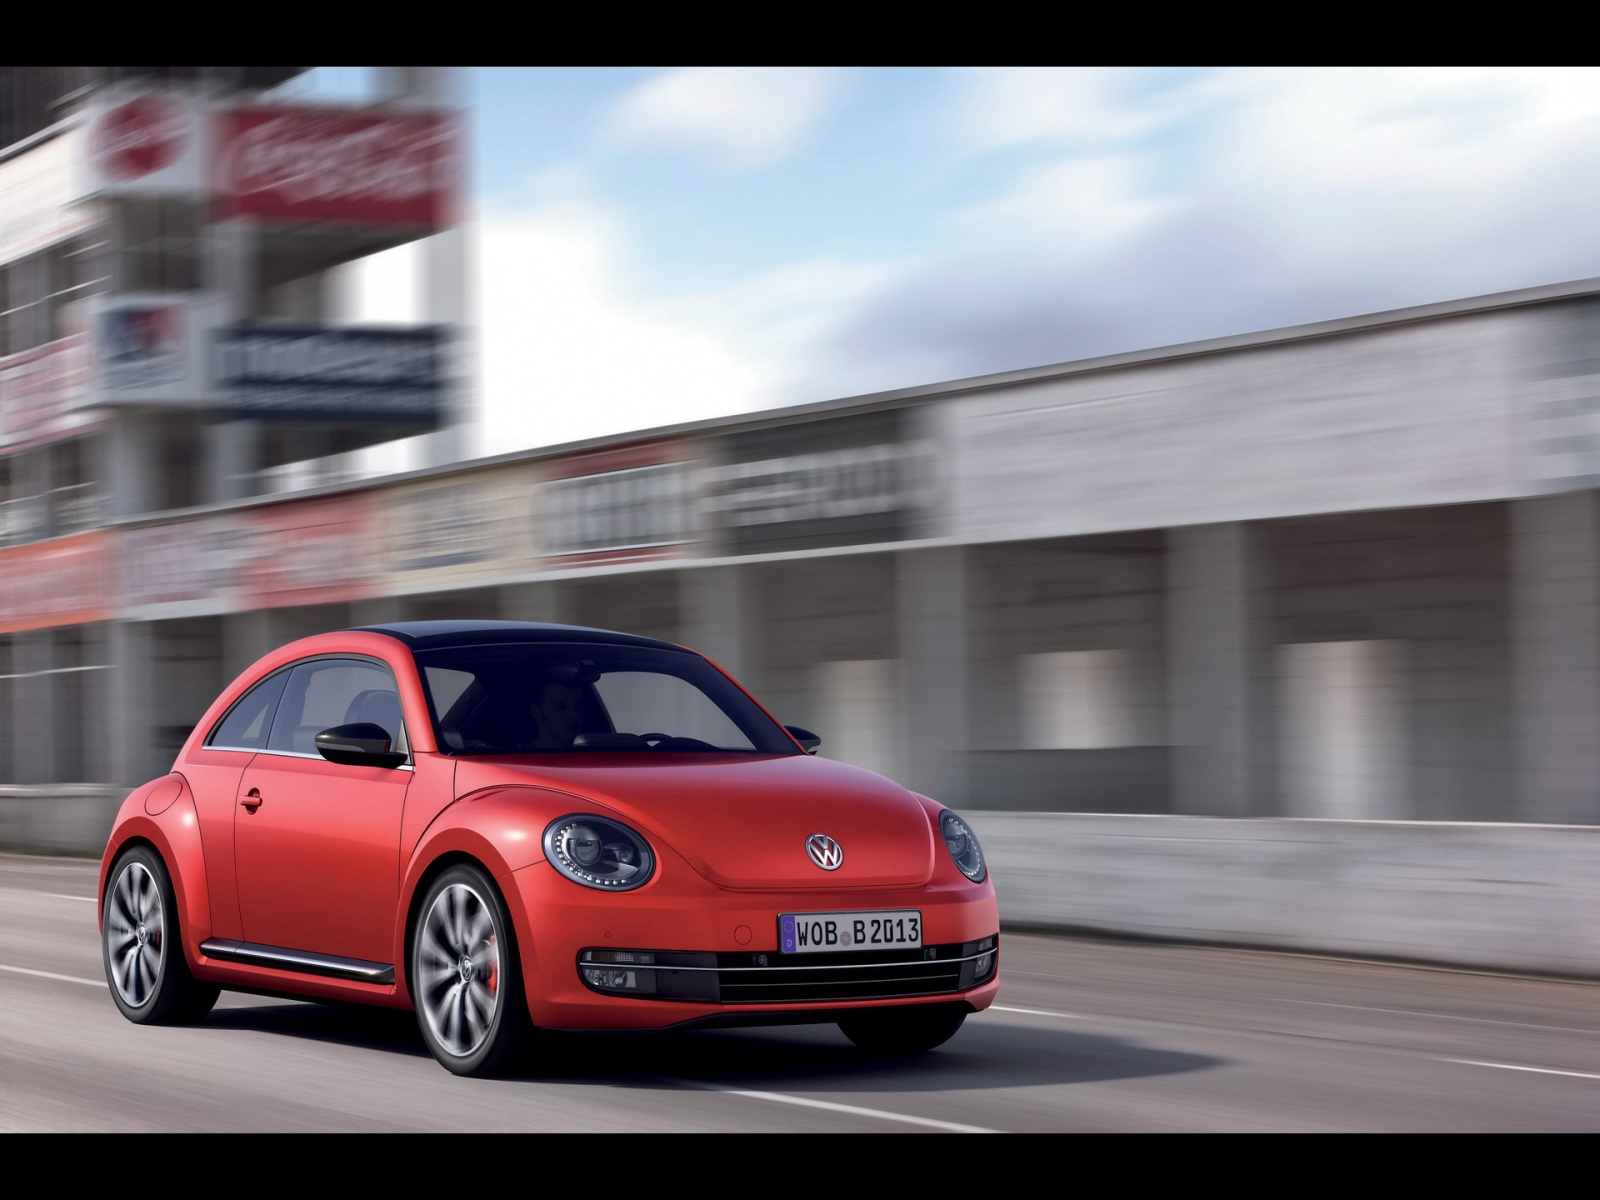 1500x500 2012 Red VW Beetle Front Angle Twitter Header Photo